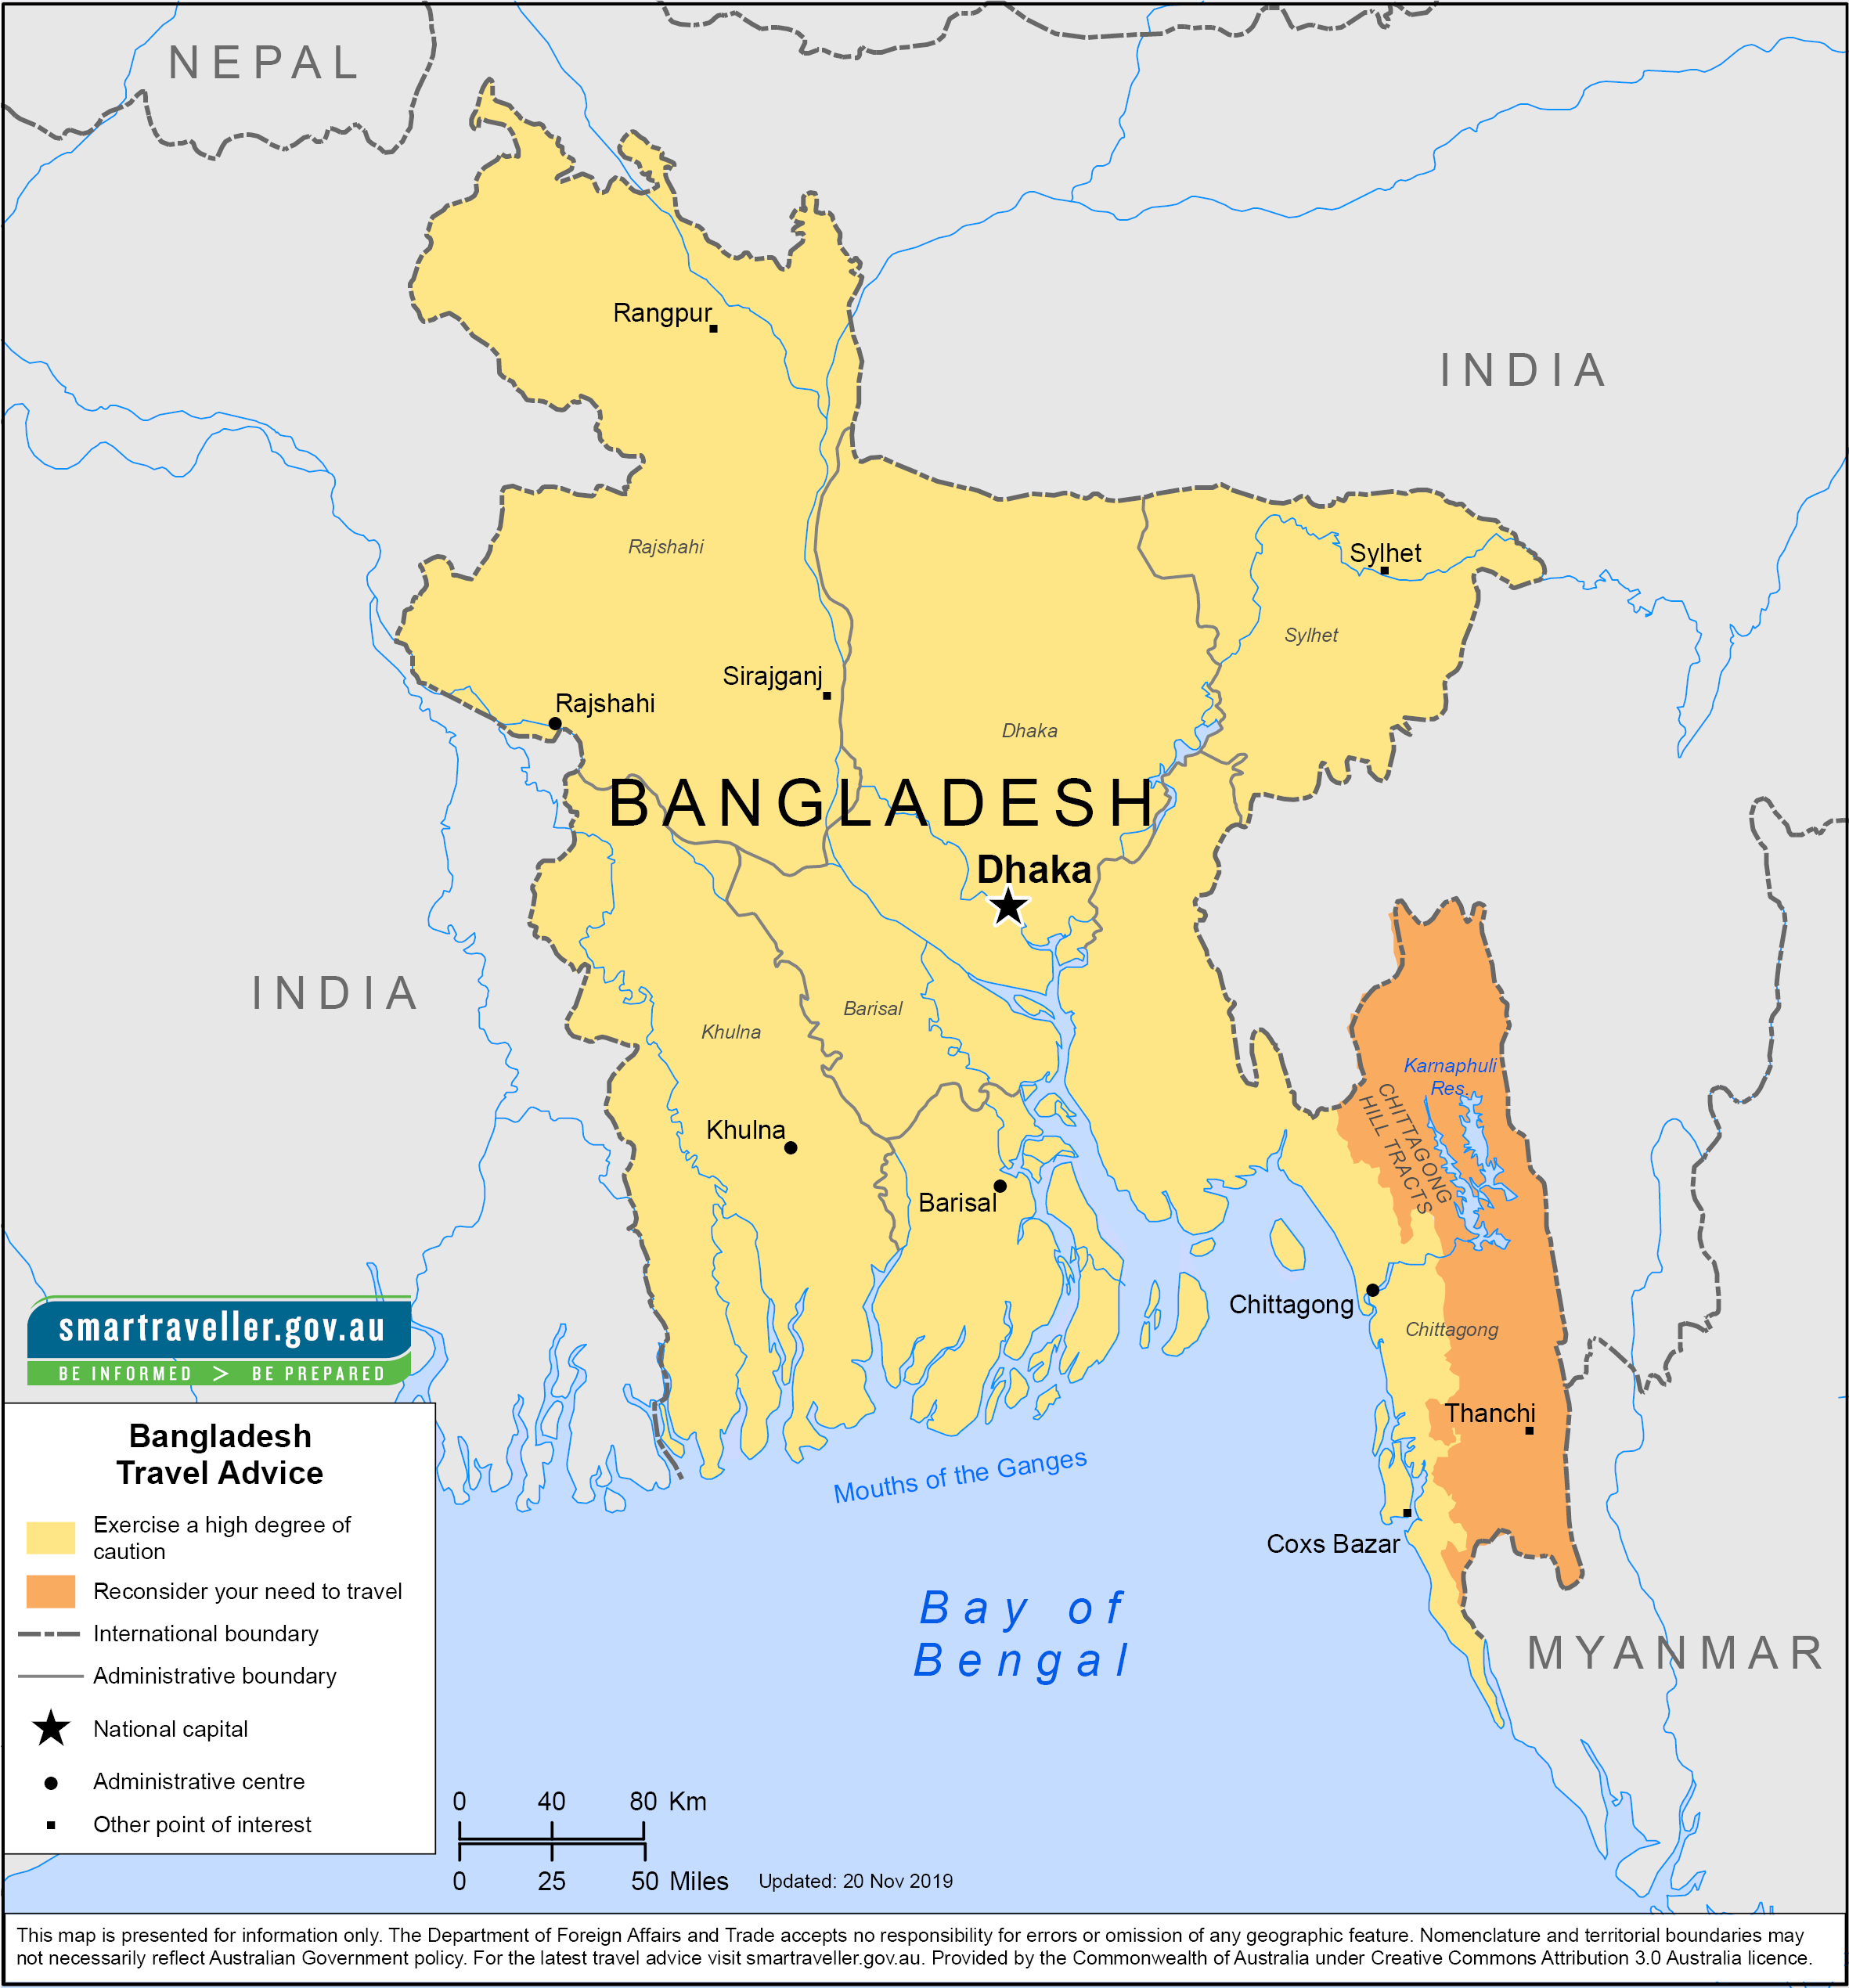 Bangladesh Traveler Information - Travel Advice